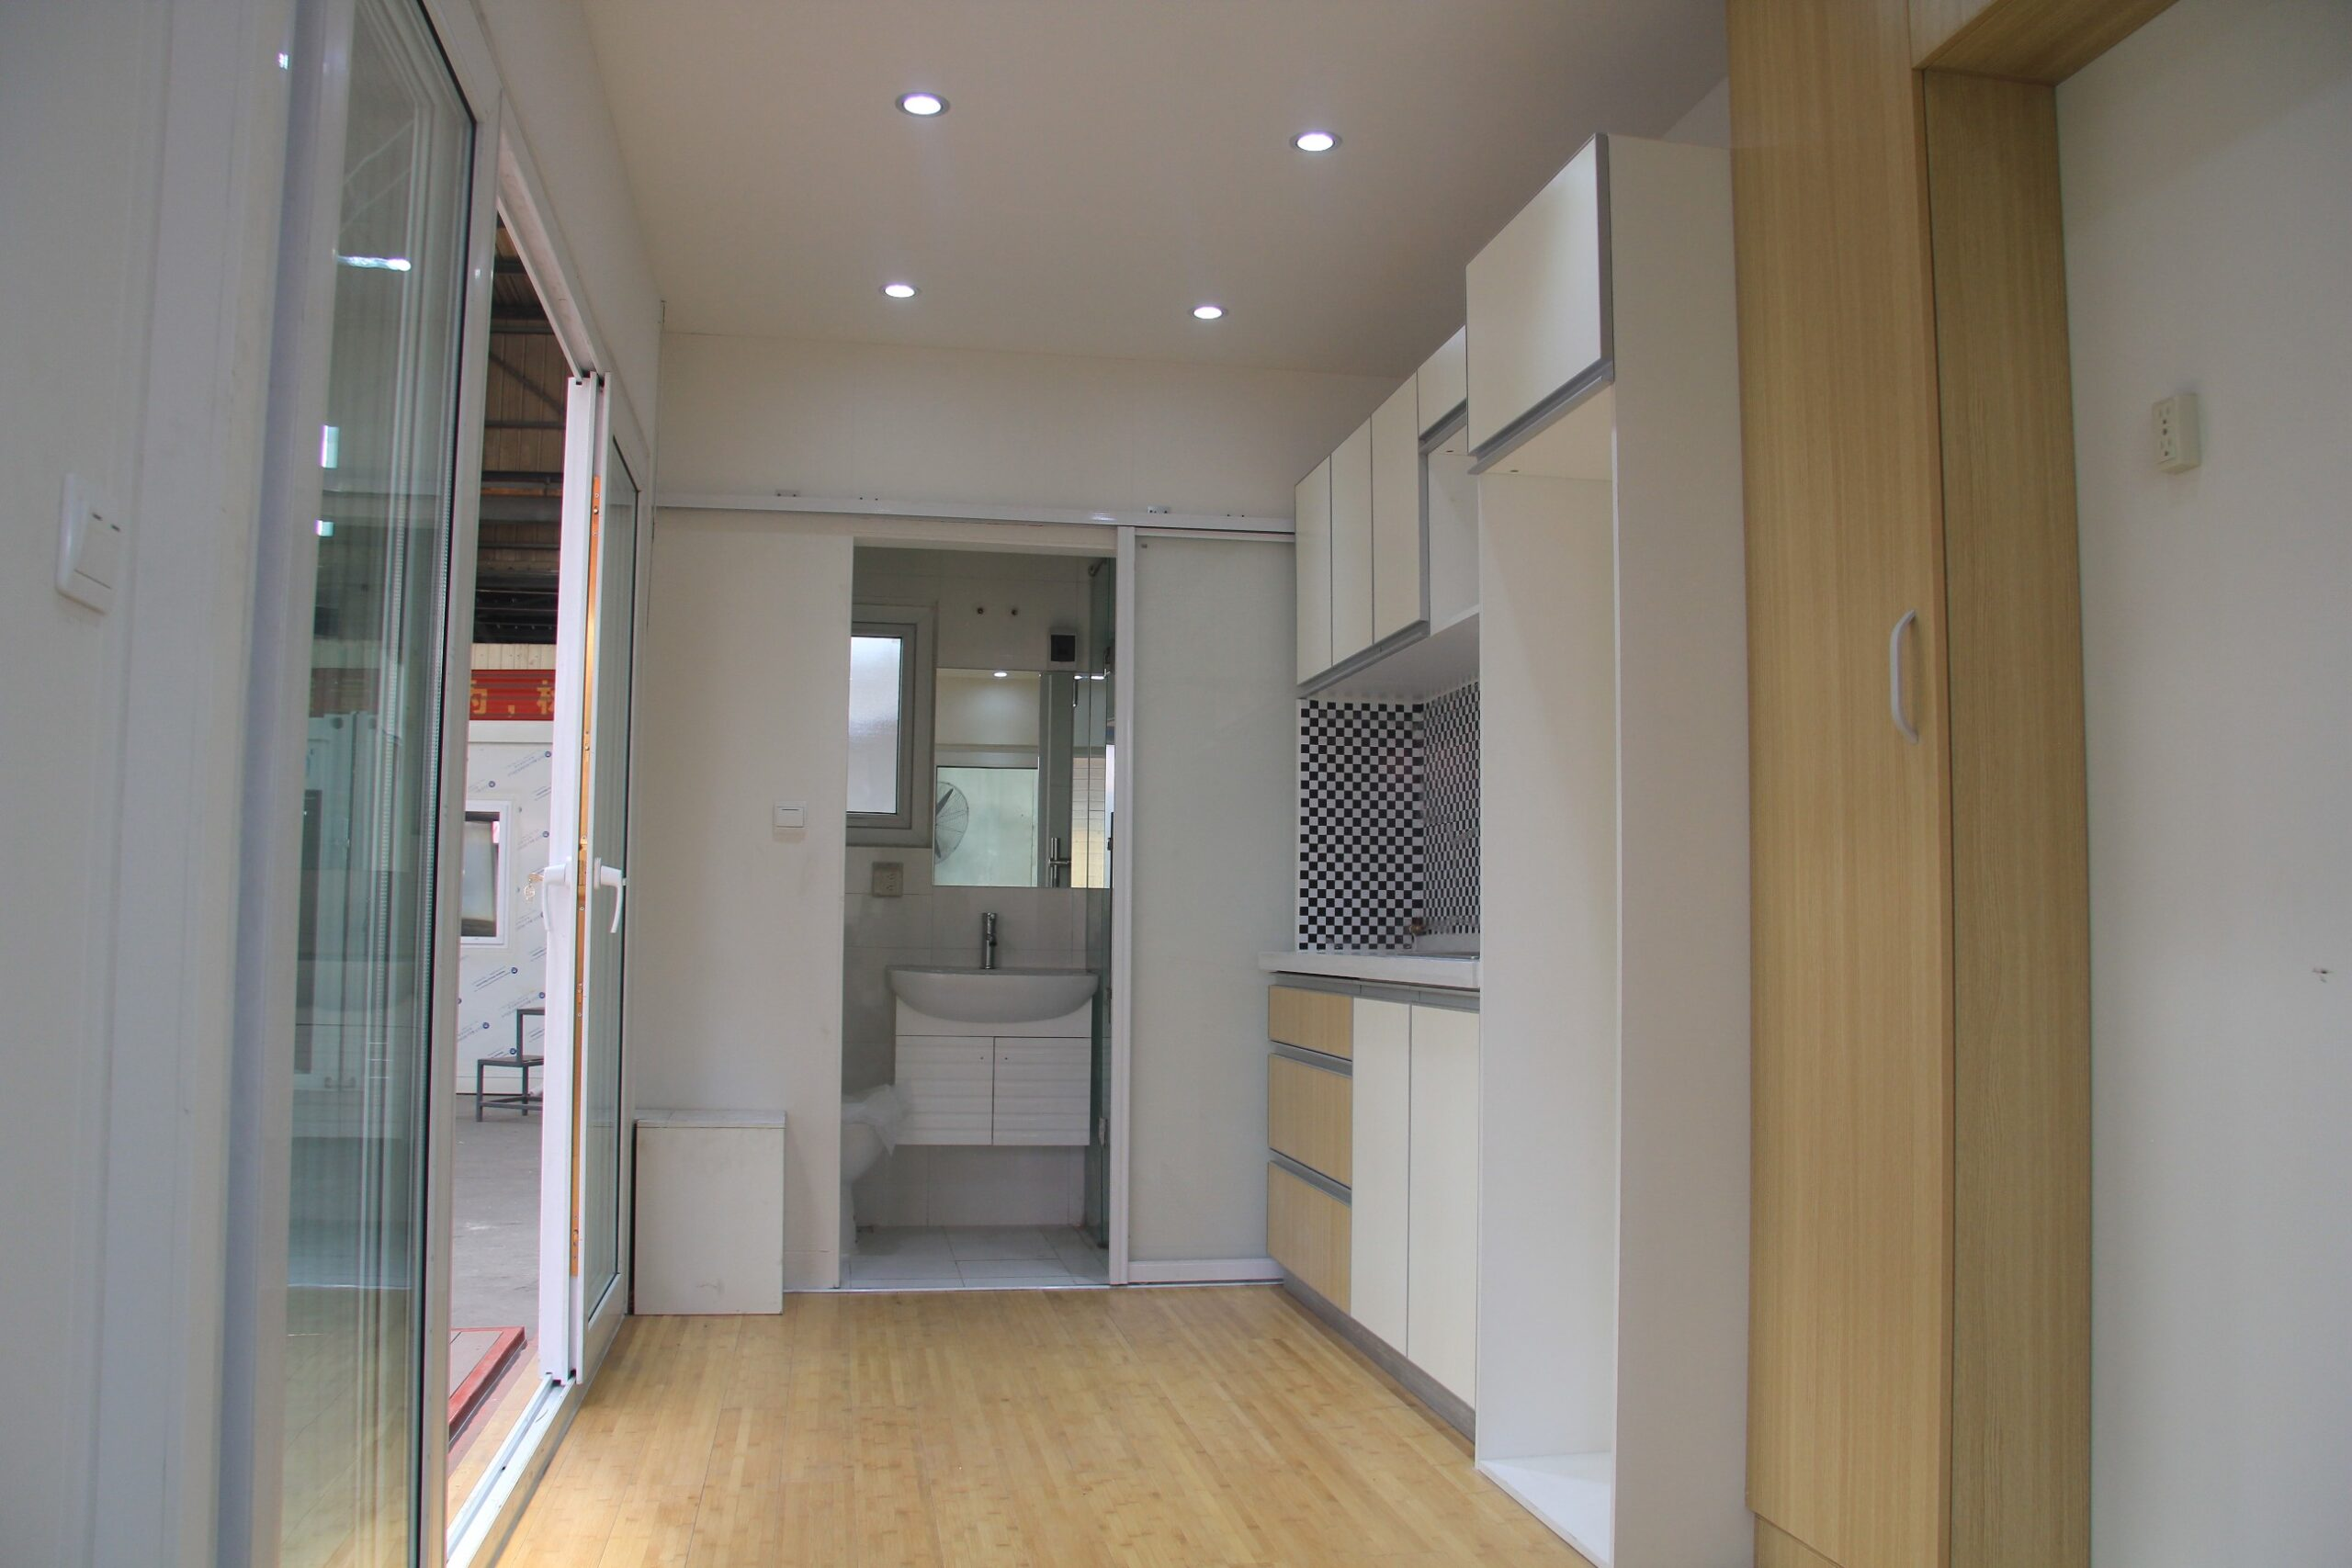 container-home-4-homeless-inside